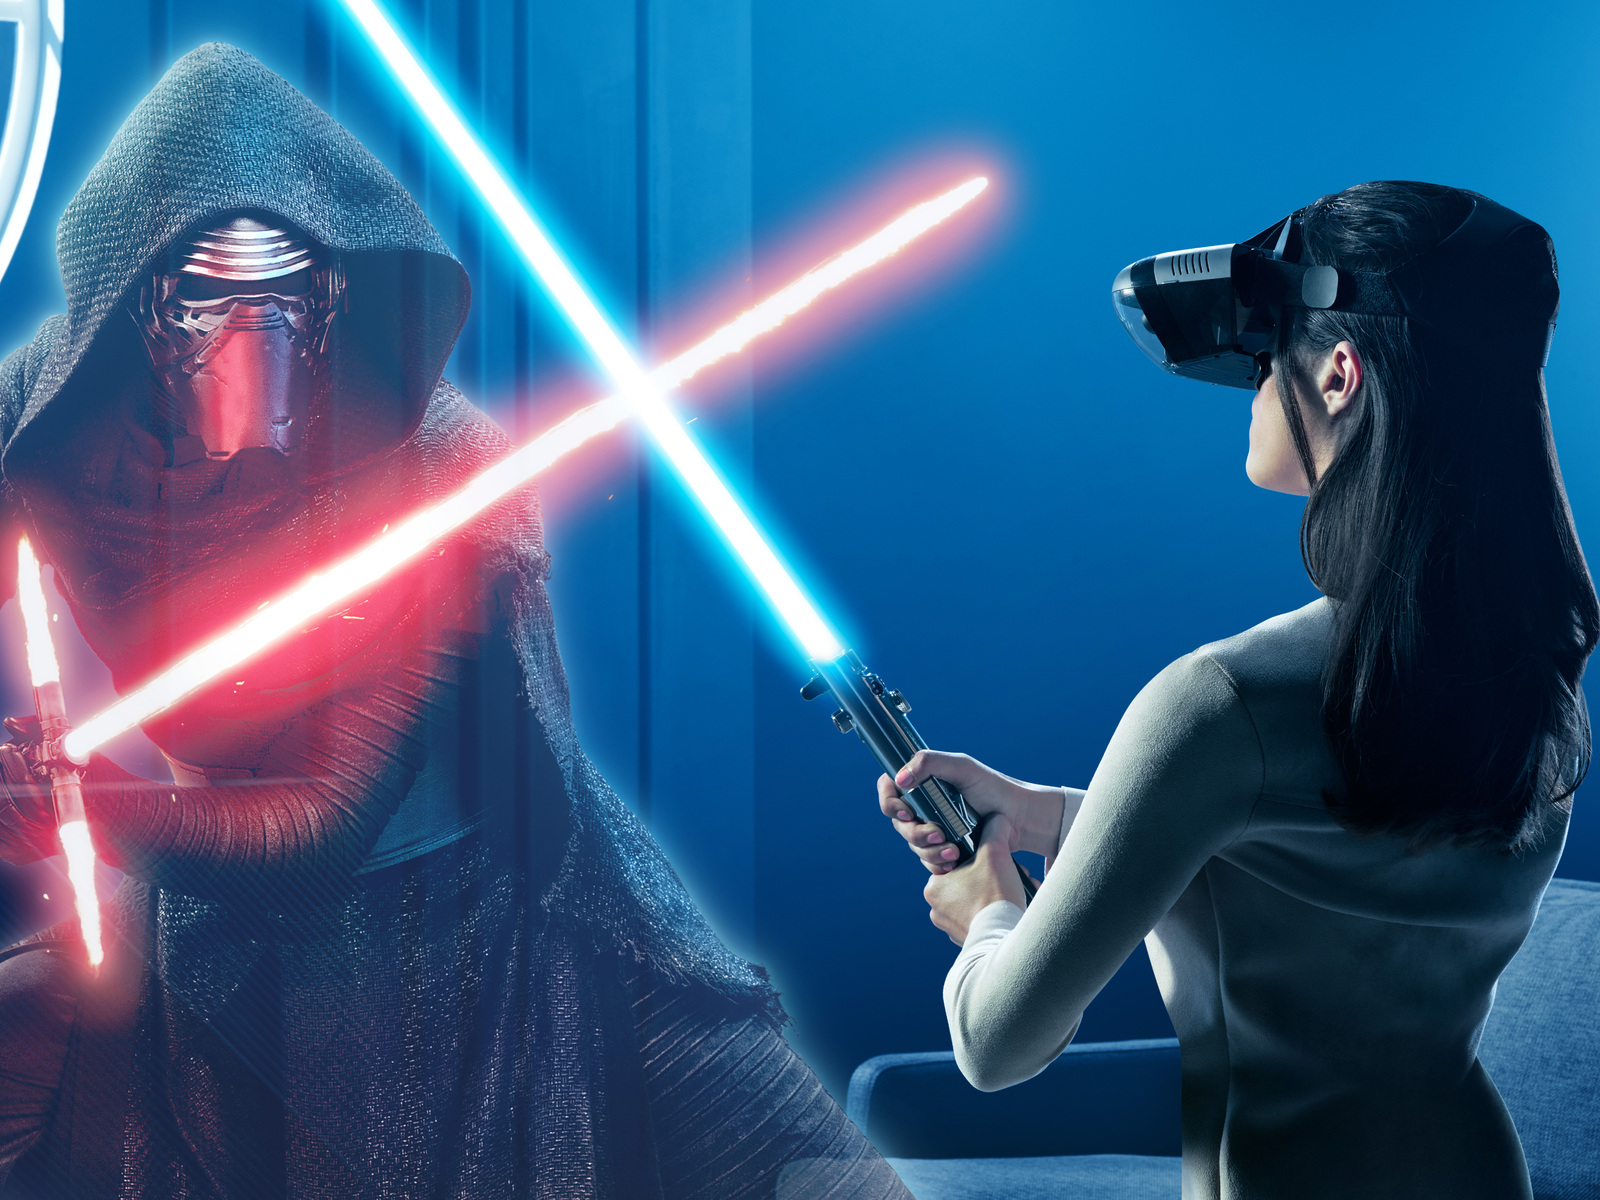 kylo-ren-and-rey-in-star-wars-the-last-jedi-vr-experience-go.jpg